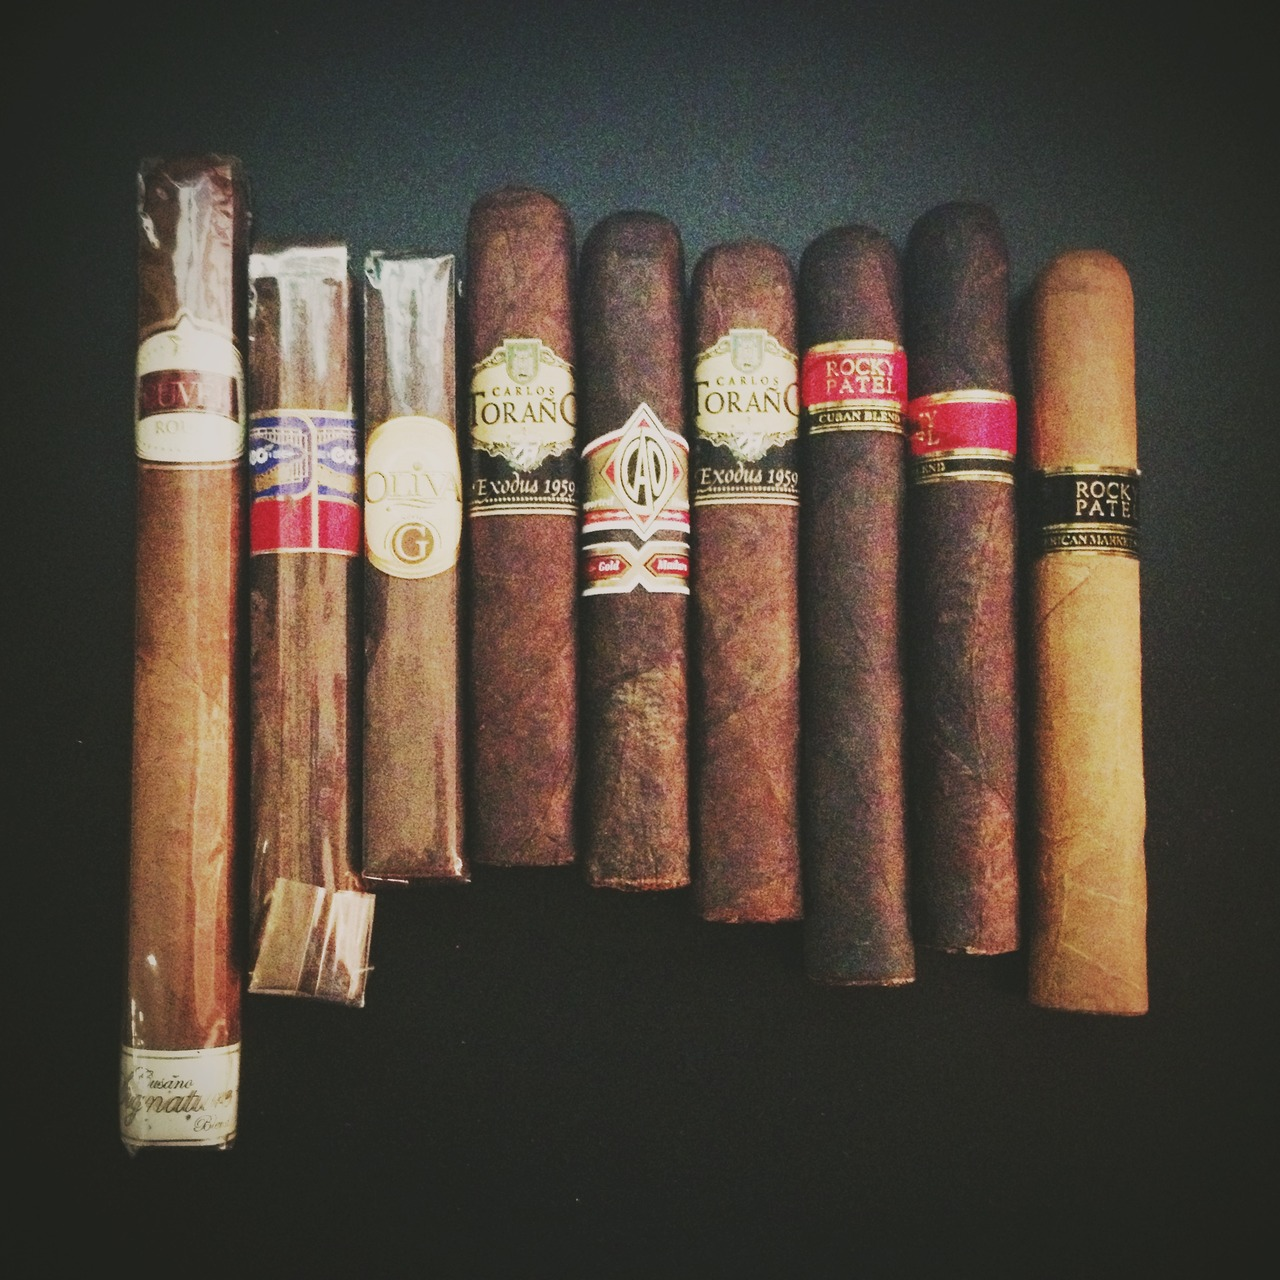 Throw Aways from My White Friend #peppersearching #pepper #photos #cigars #gifts